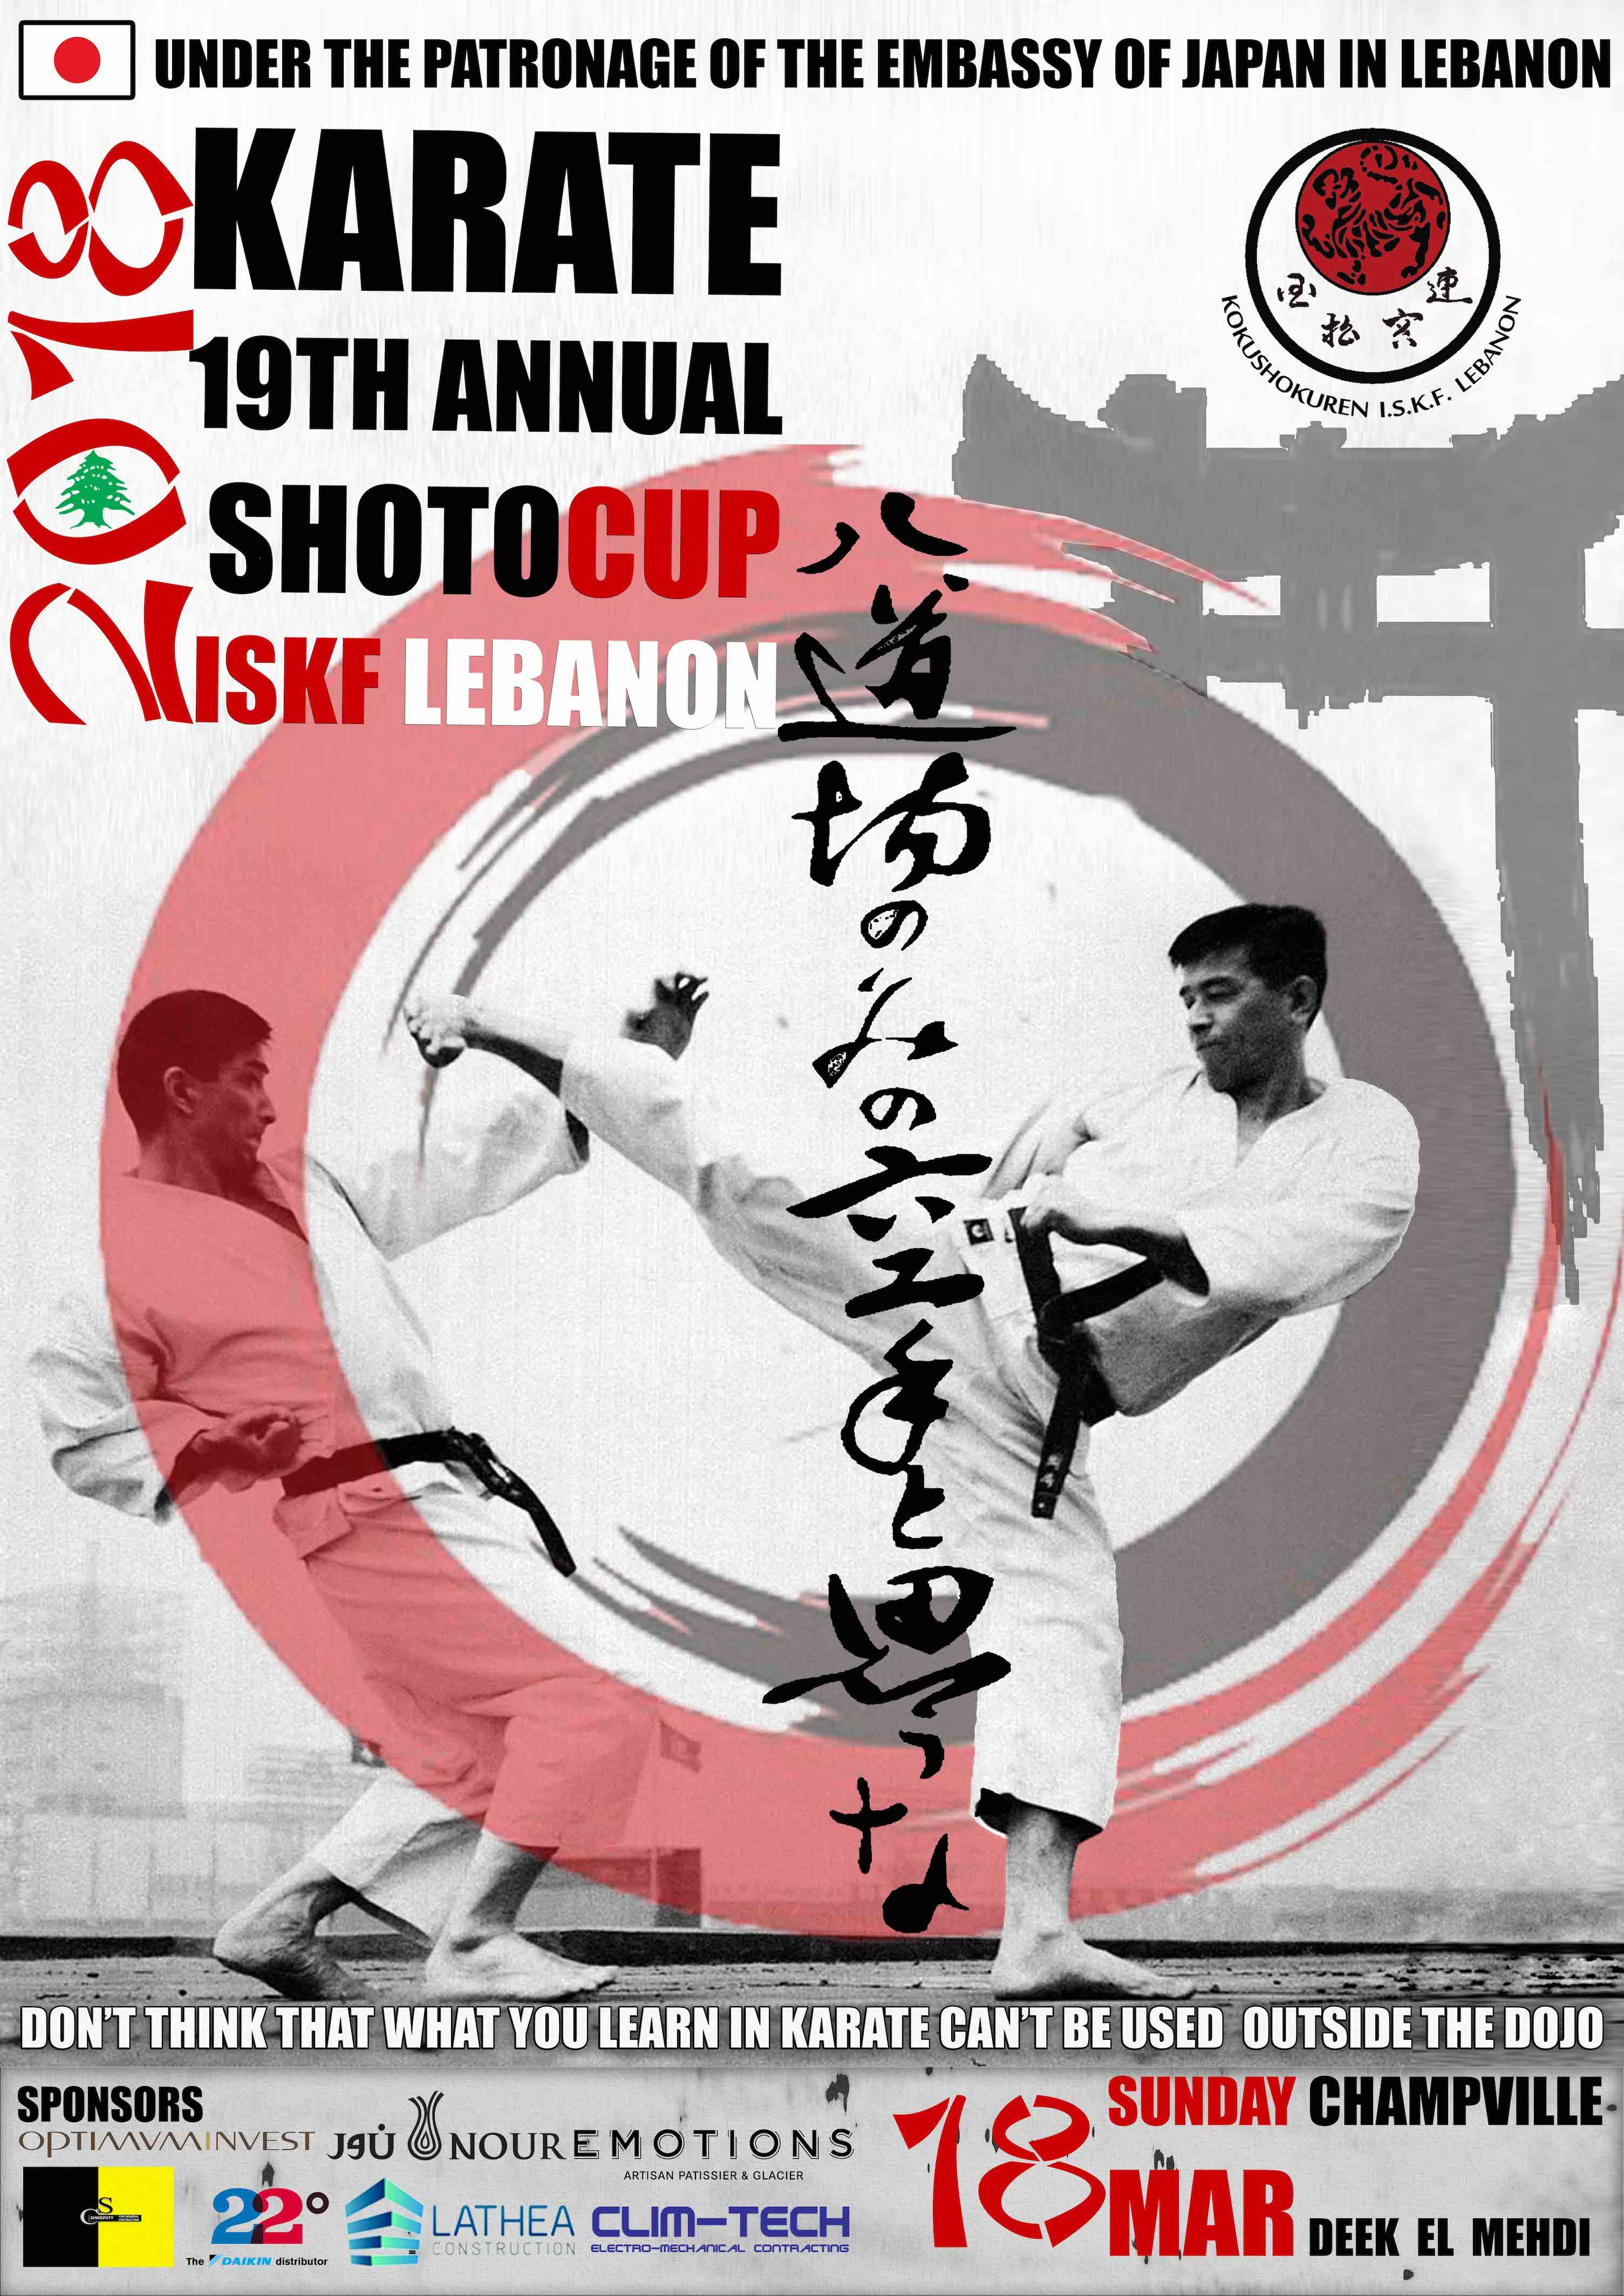 Shotocup2018poster 2